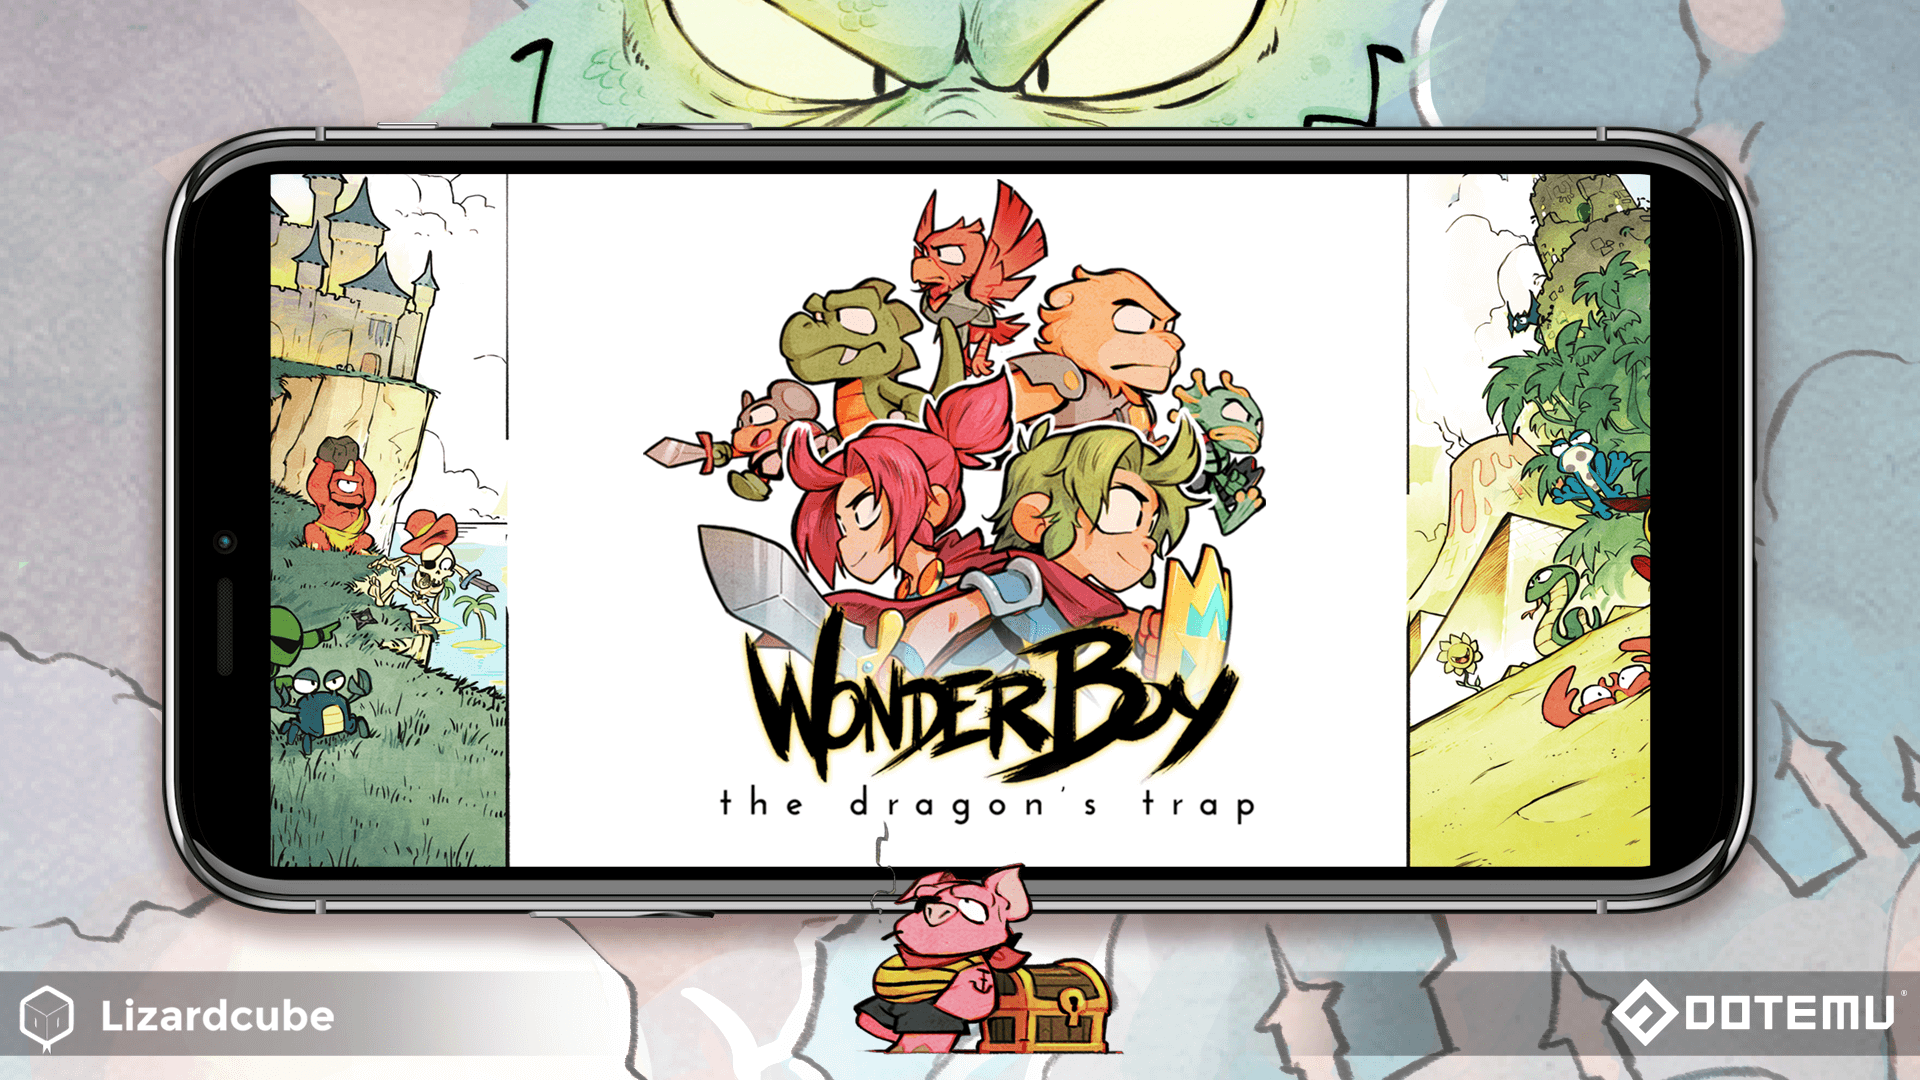 Wonder Boy The Dragon's Trap is coming on iOS and Android!